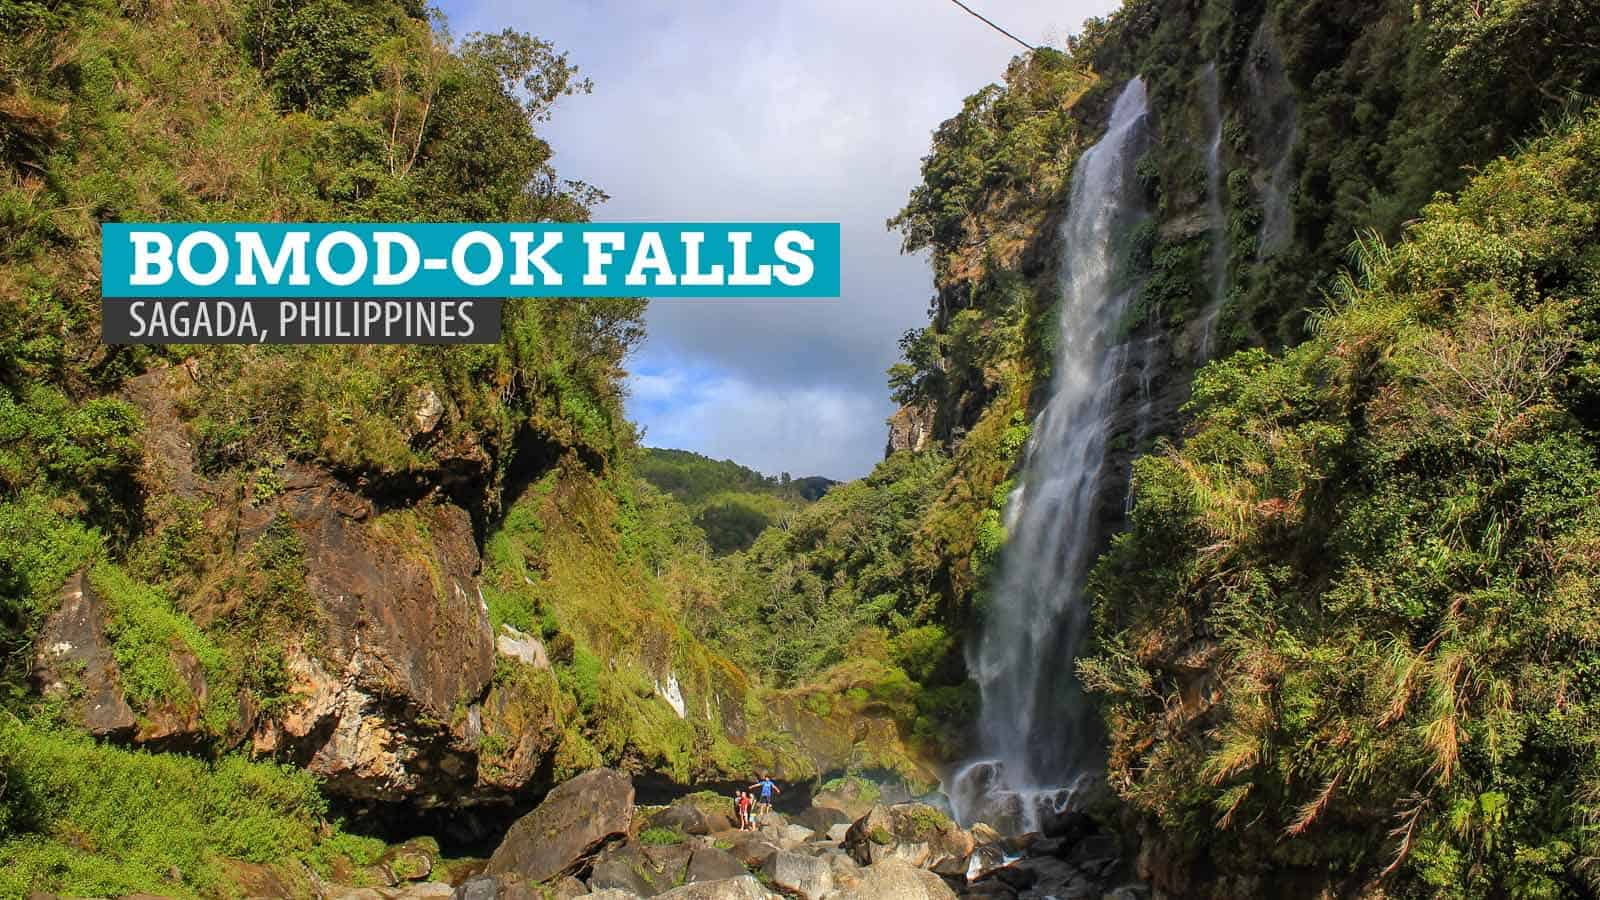 Over the Mountains to Bomod-ok Falls: Sagada, Philippines